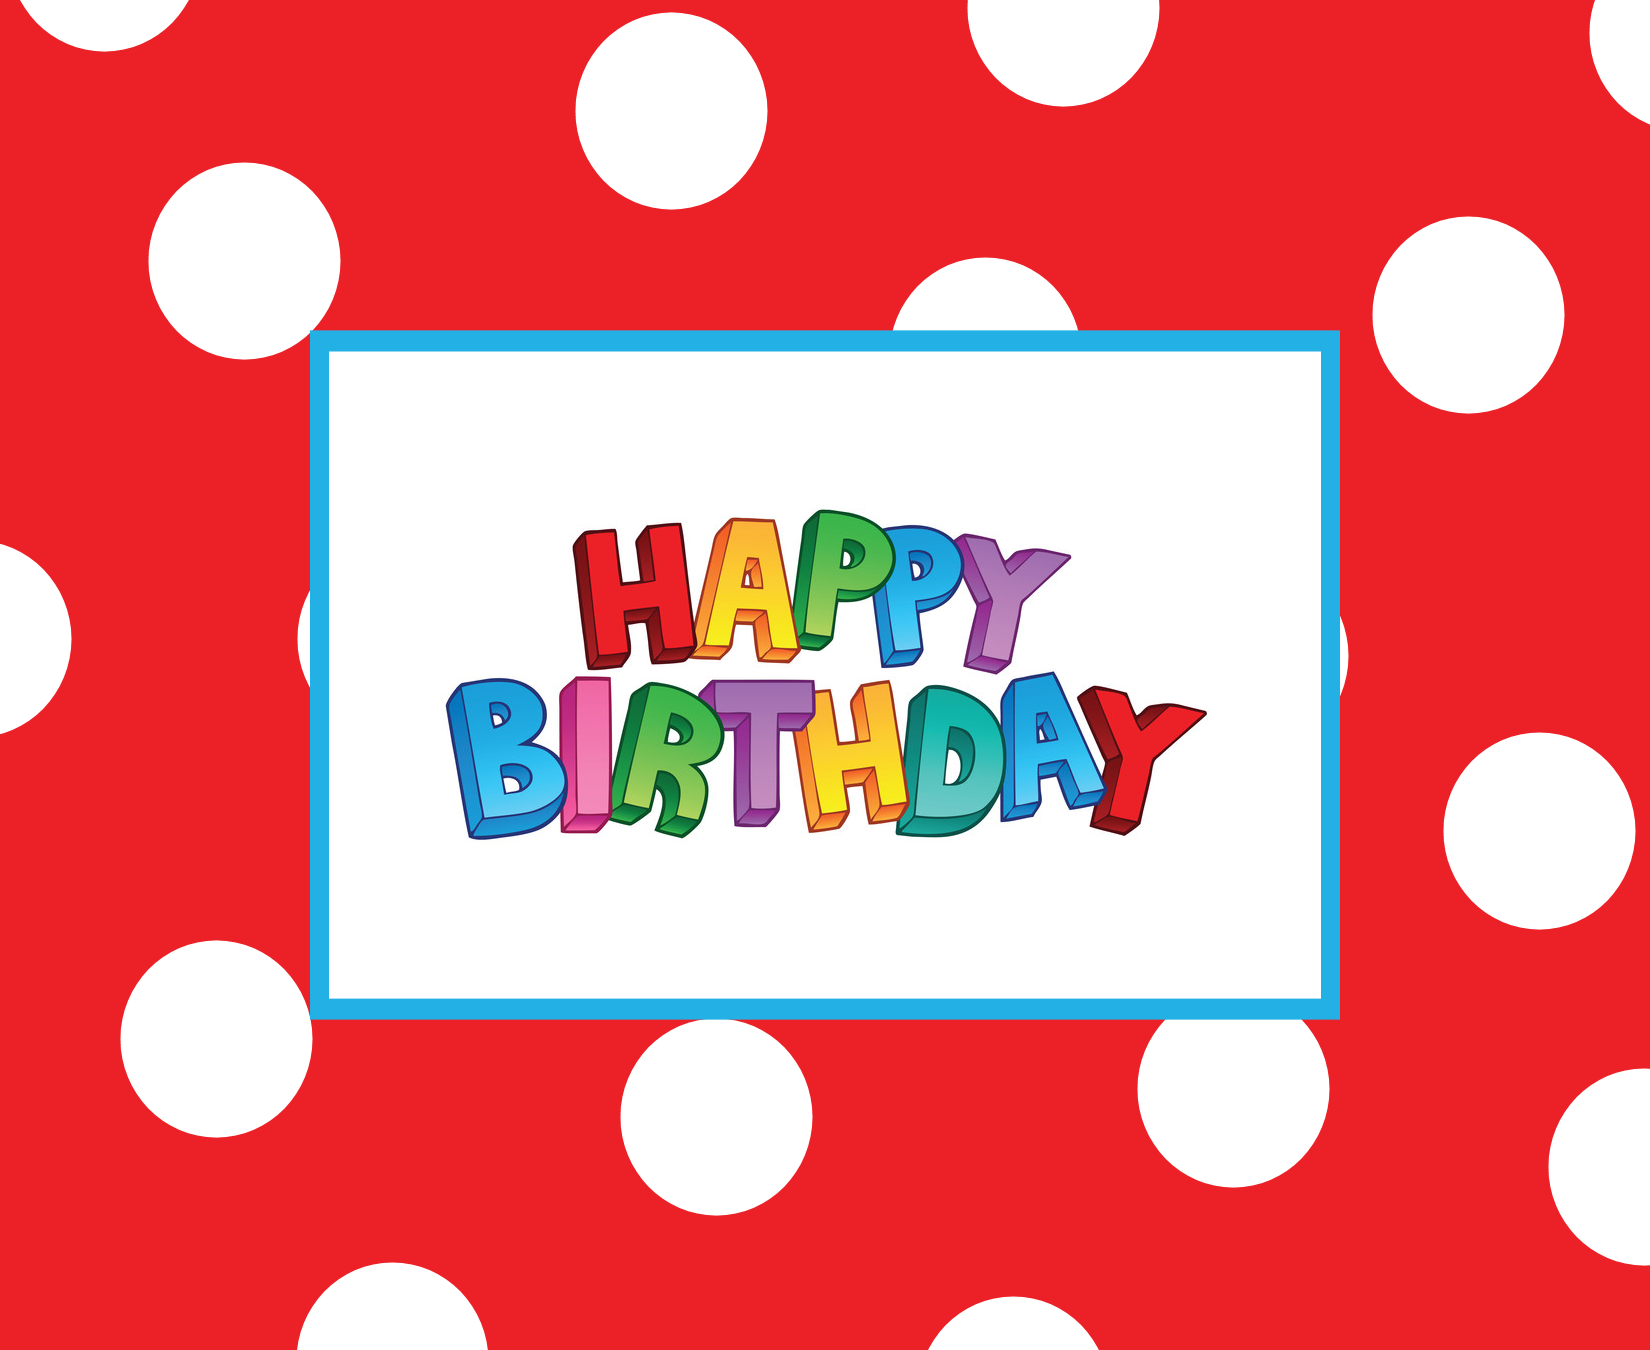 Free Printable Birthday Card Images